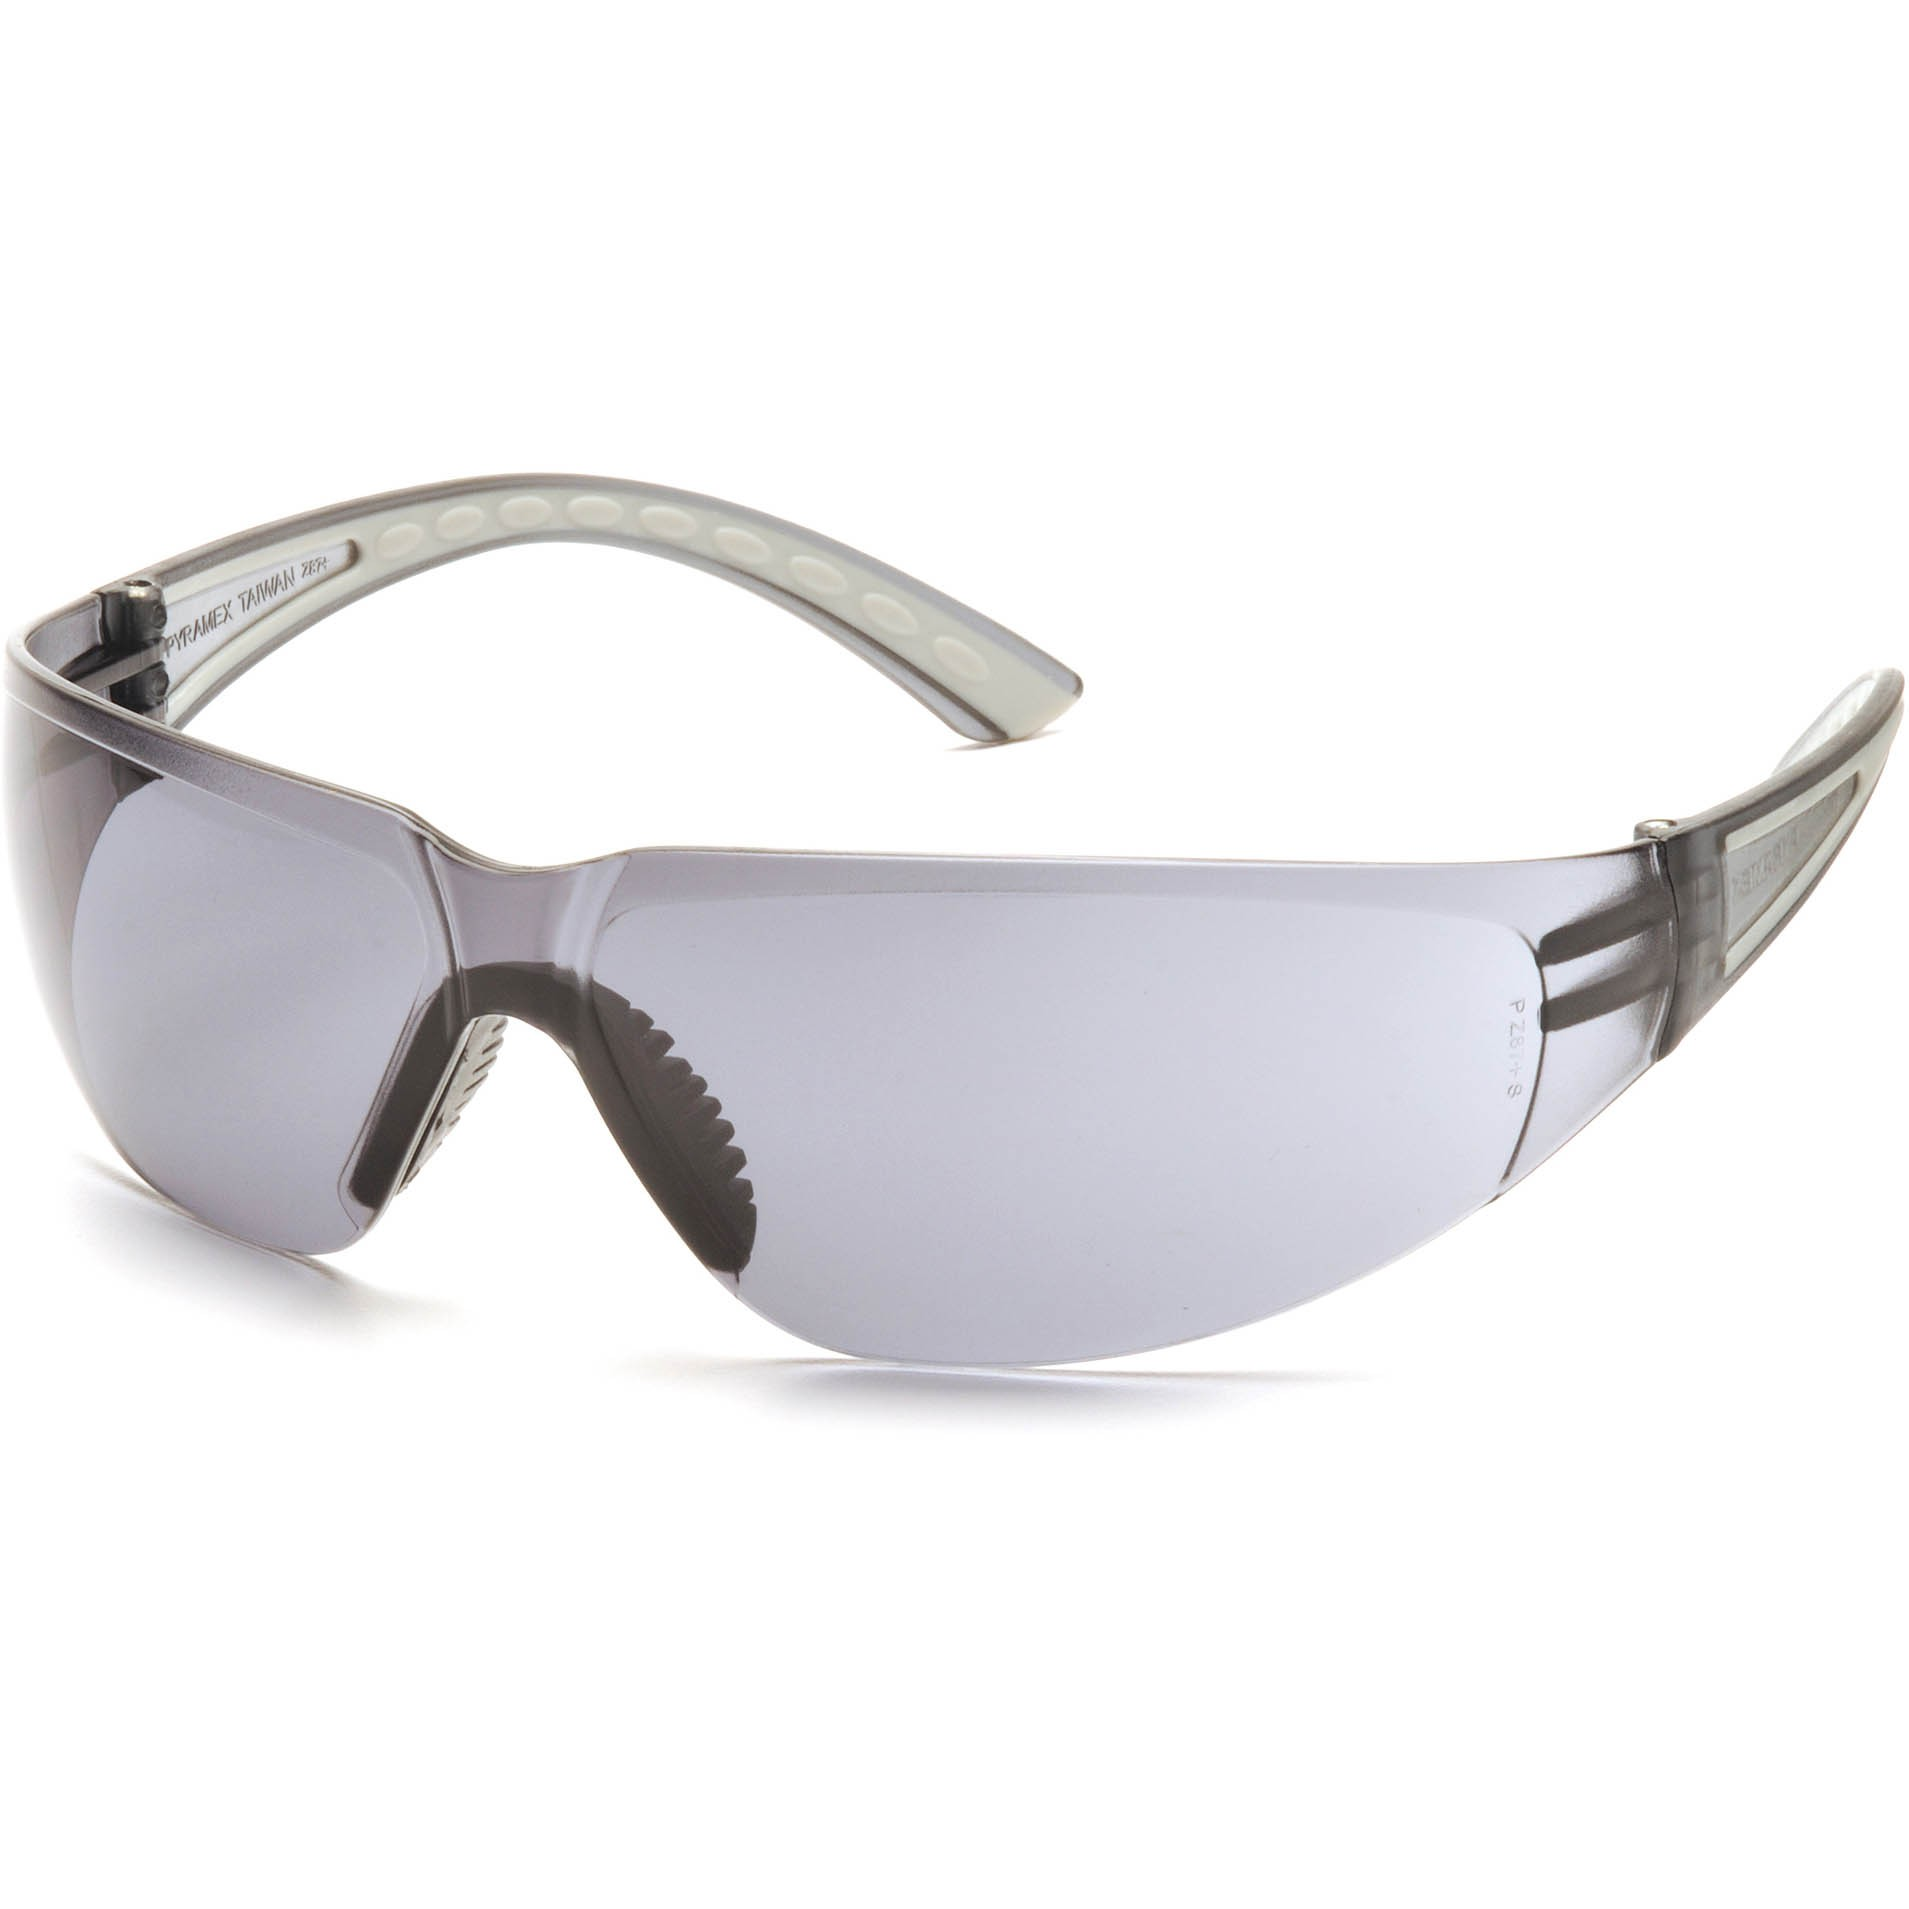 Pyramex Cortez Safety Glasses - Gray Temples - Gray Frame ...